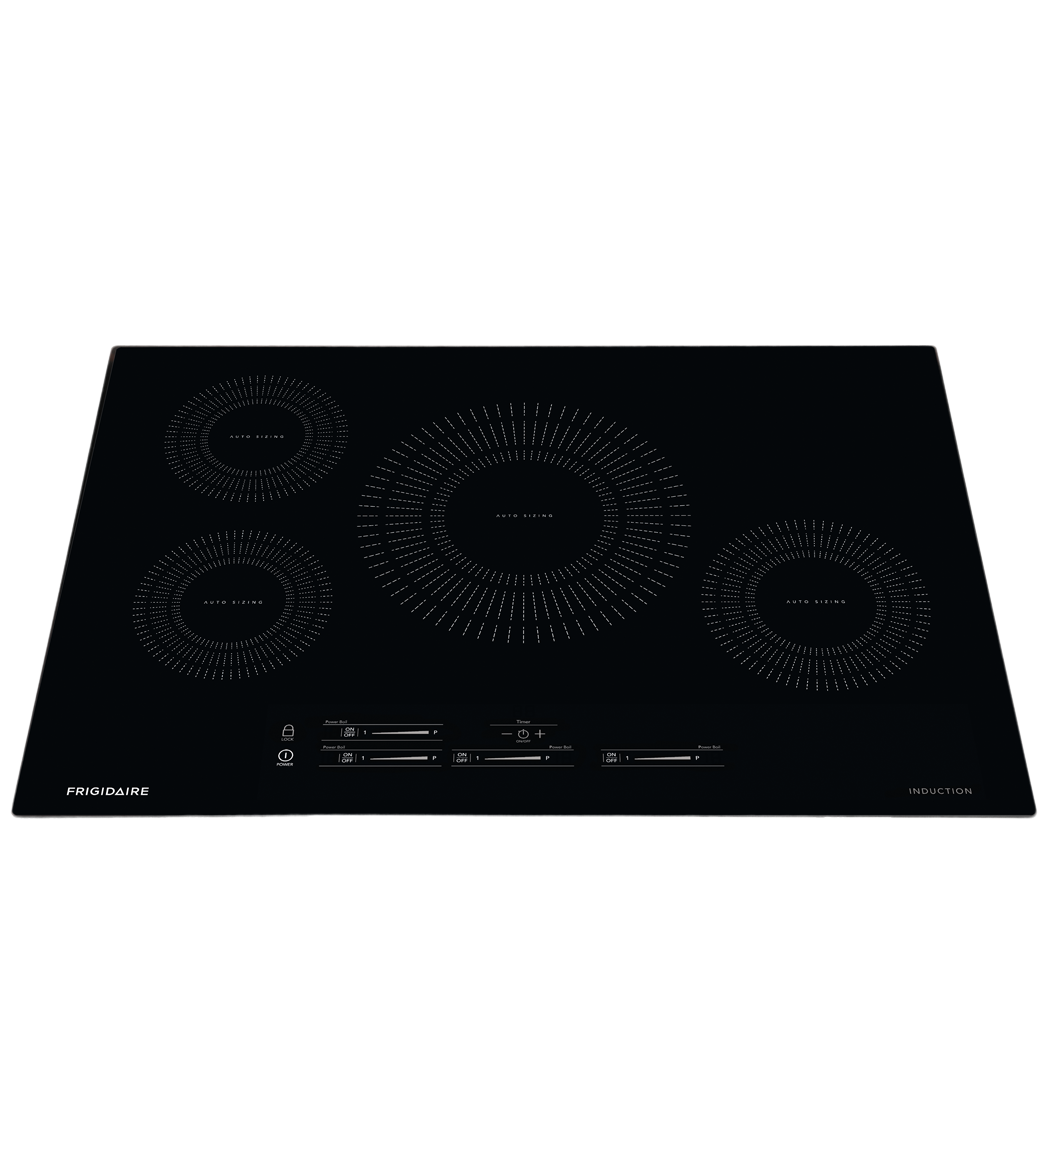 Frigidaire Cooktop 22 FFIC3026T in Black color showcased by Corbeil Electro Store